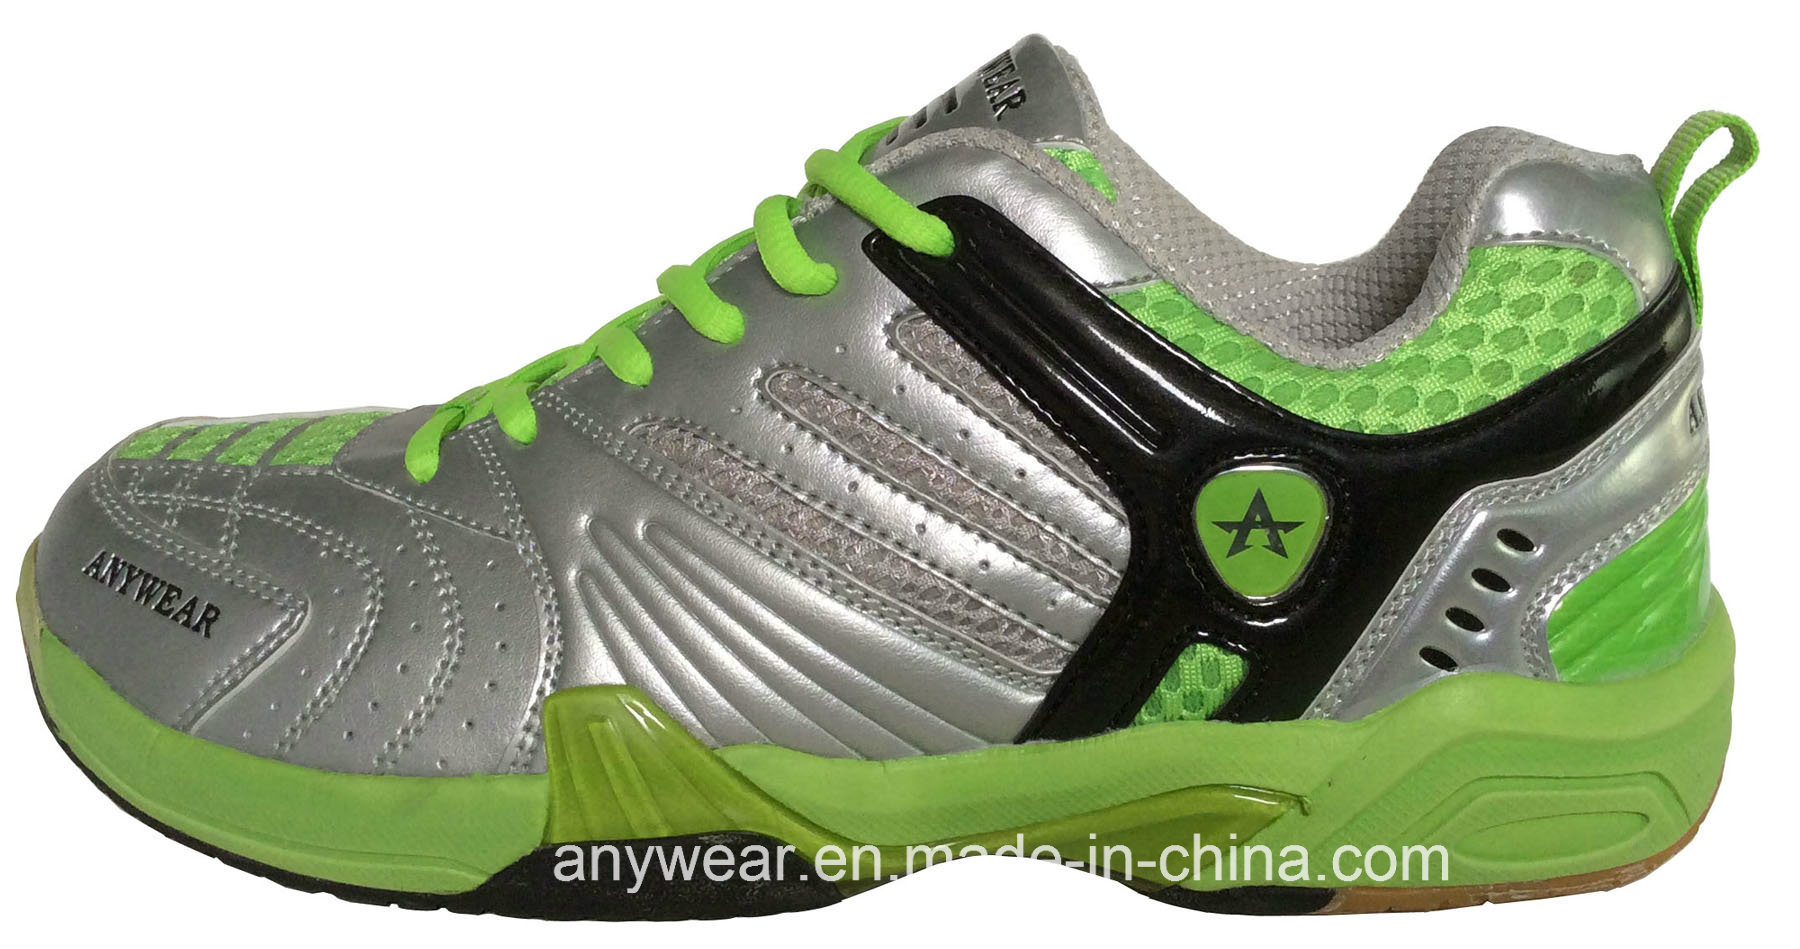 Men Sport Badminton Court Squash Footwear (815-2114)